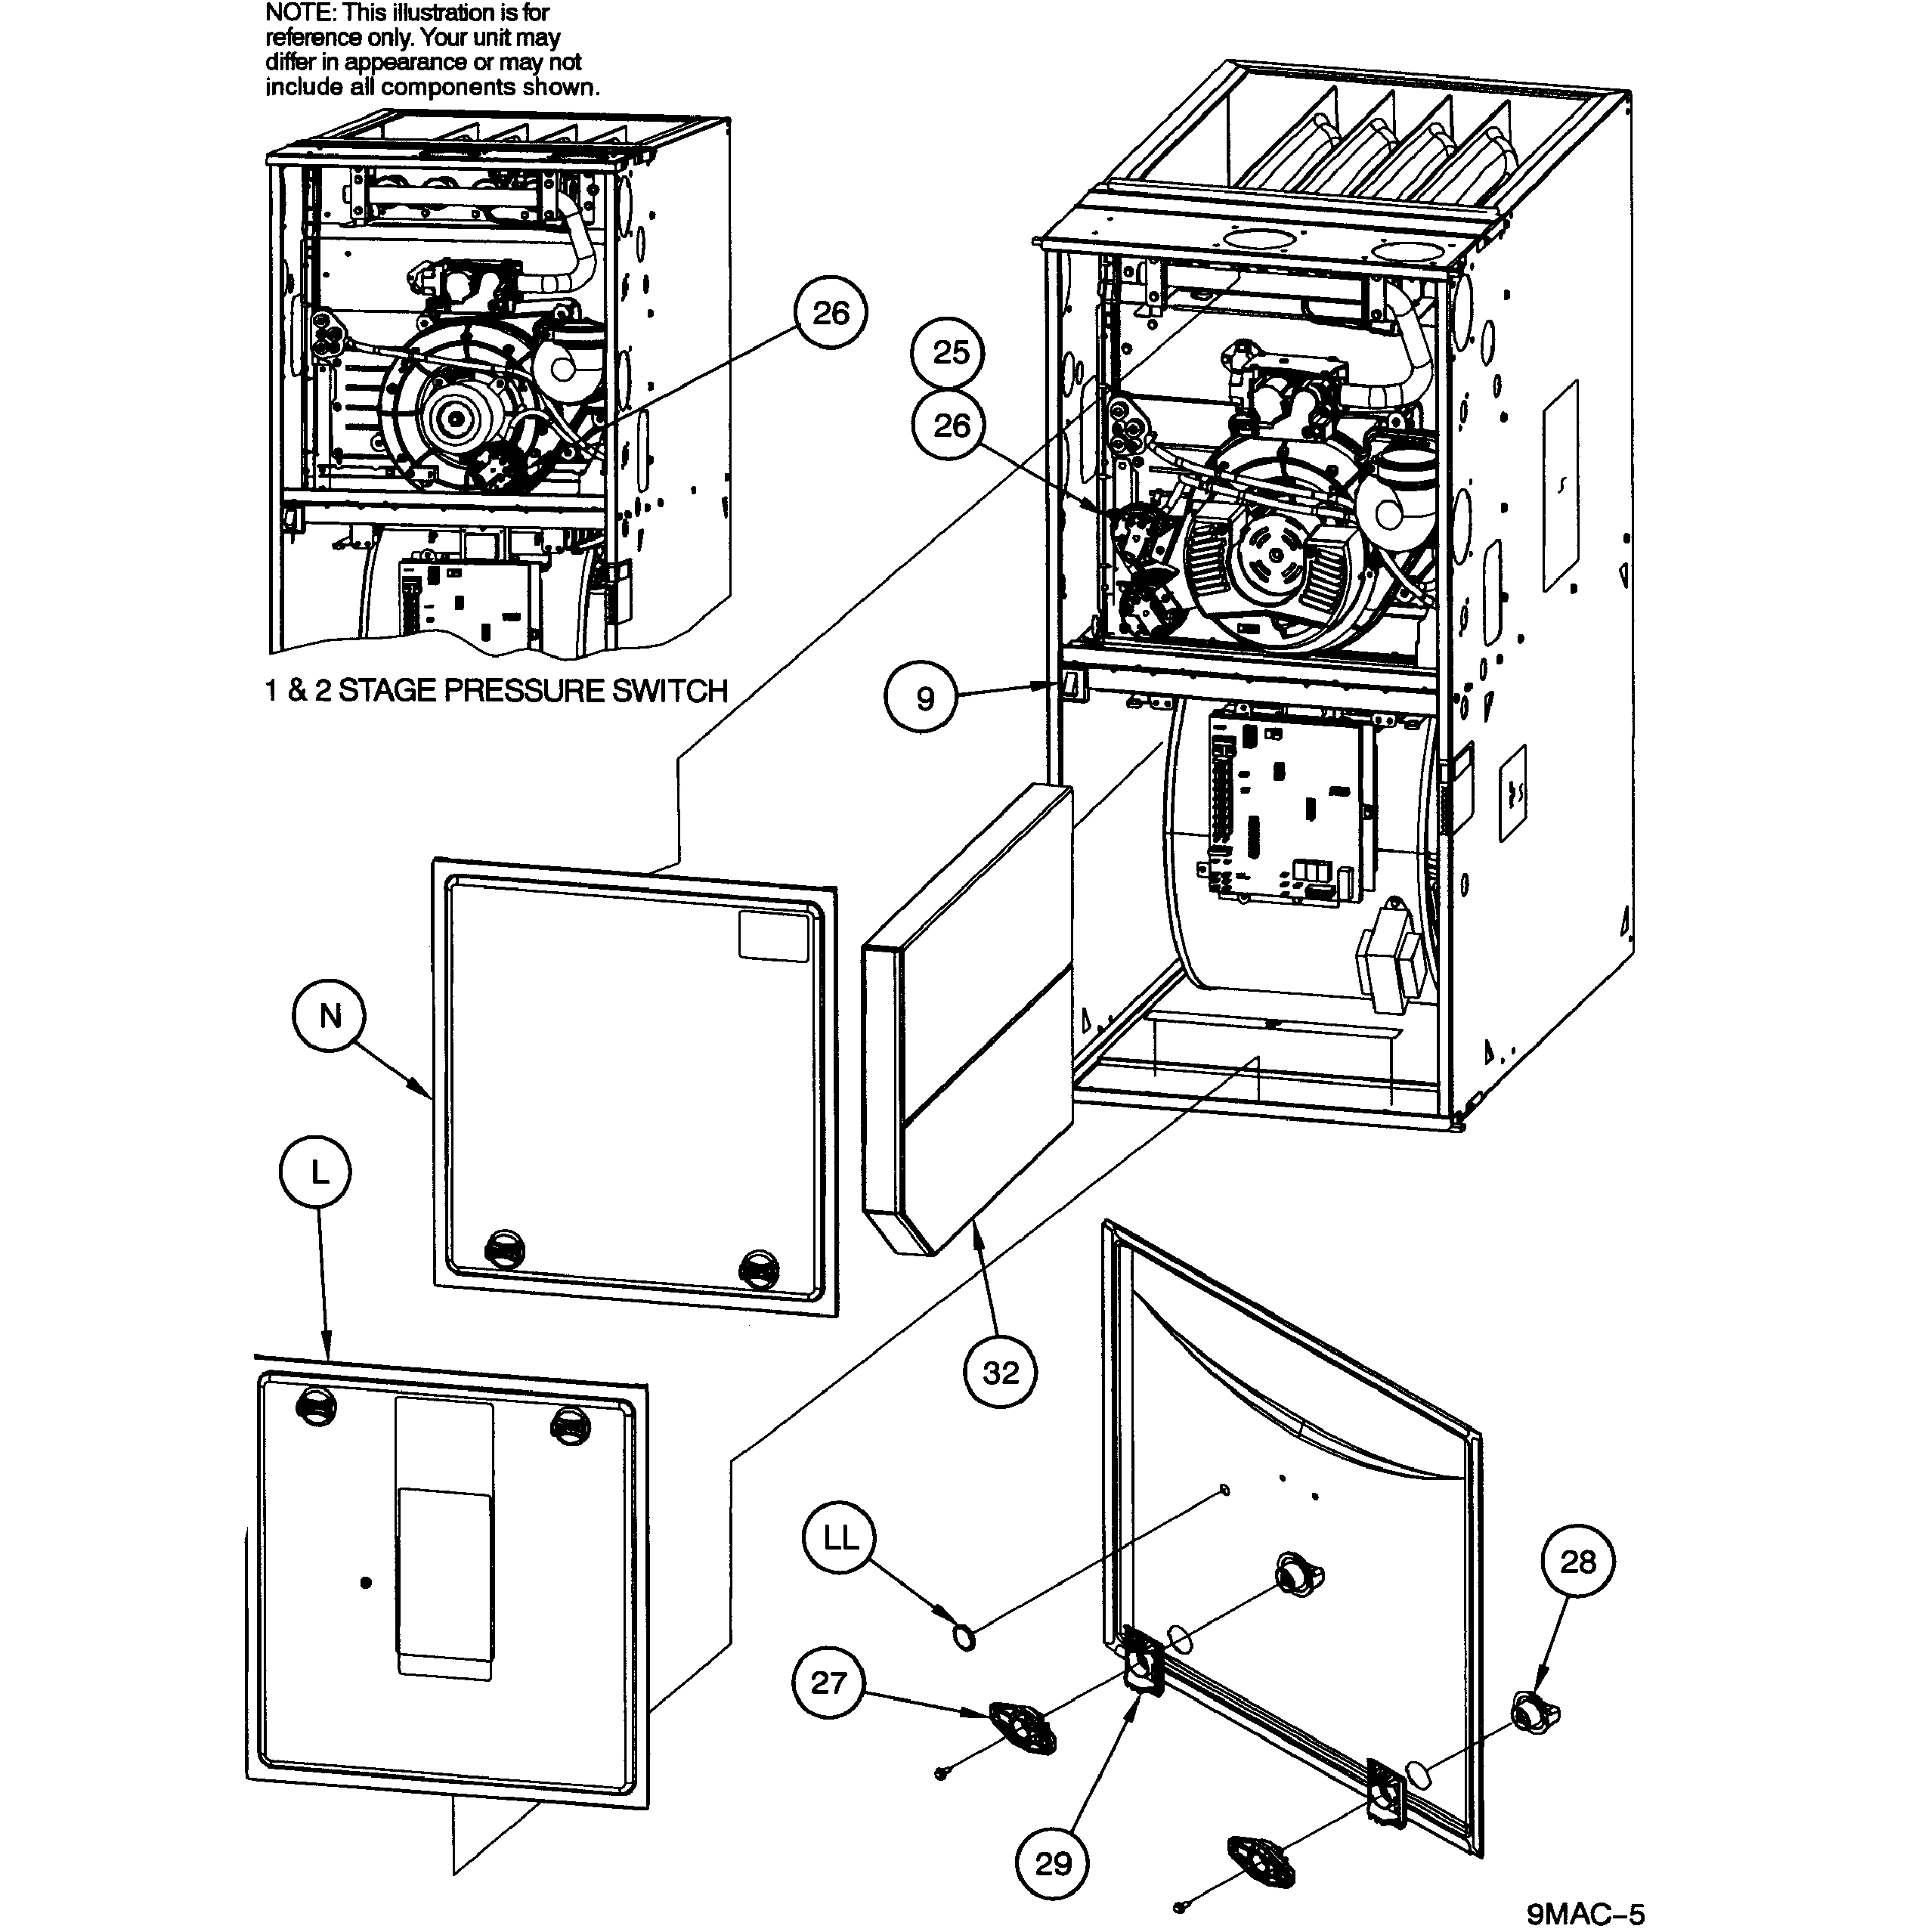 Furnace Drawing at GetDrawings.com | Free for personal use Furnace ...